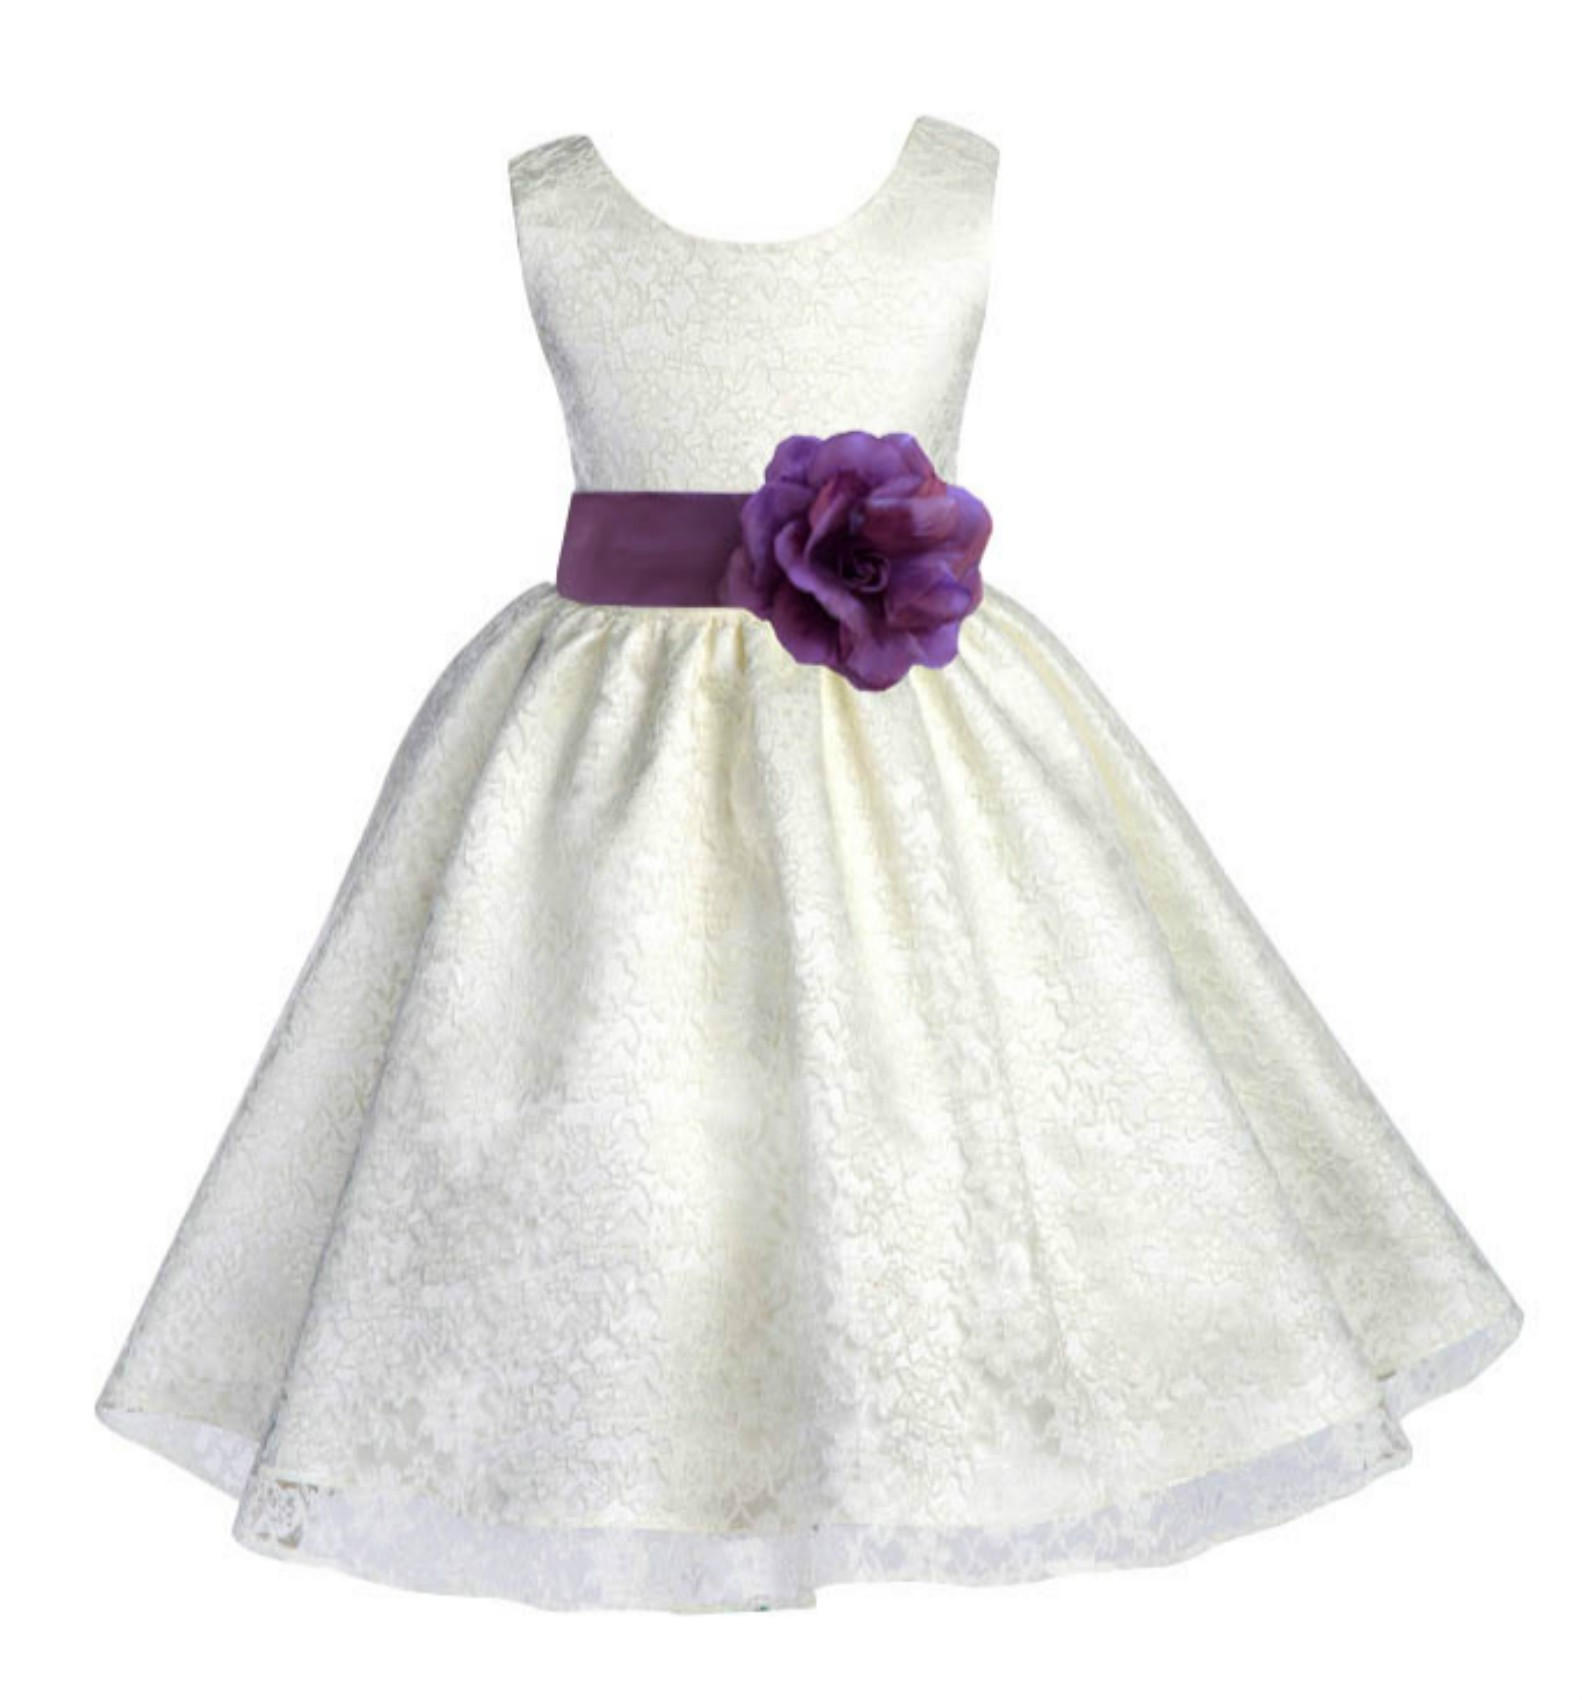 Ivory/Wisteria Floral Lace Overlay Flower Girl Dress Special Event 163S